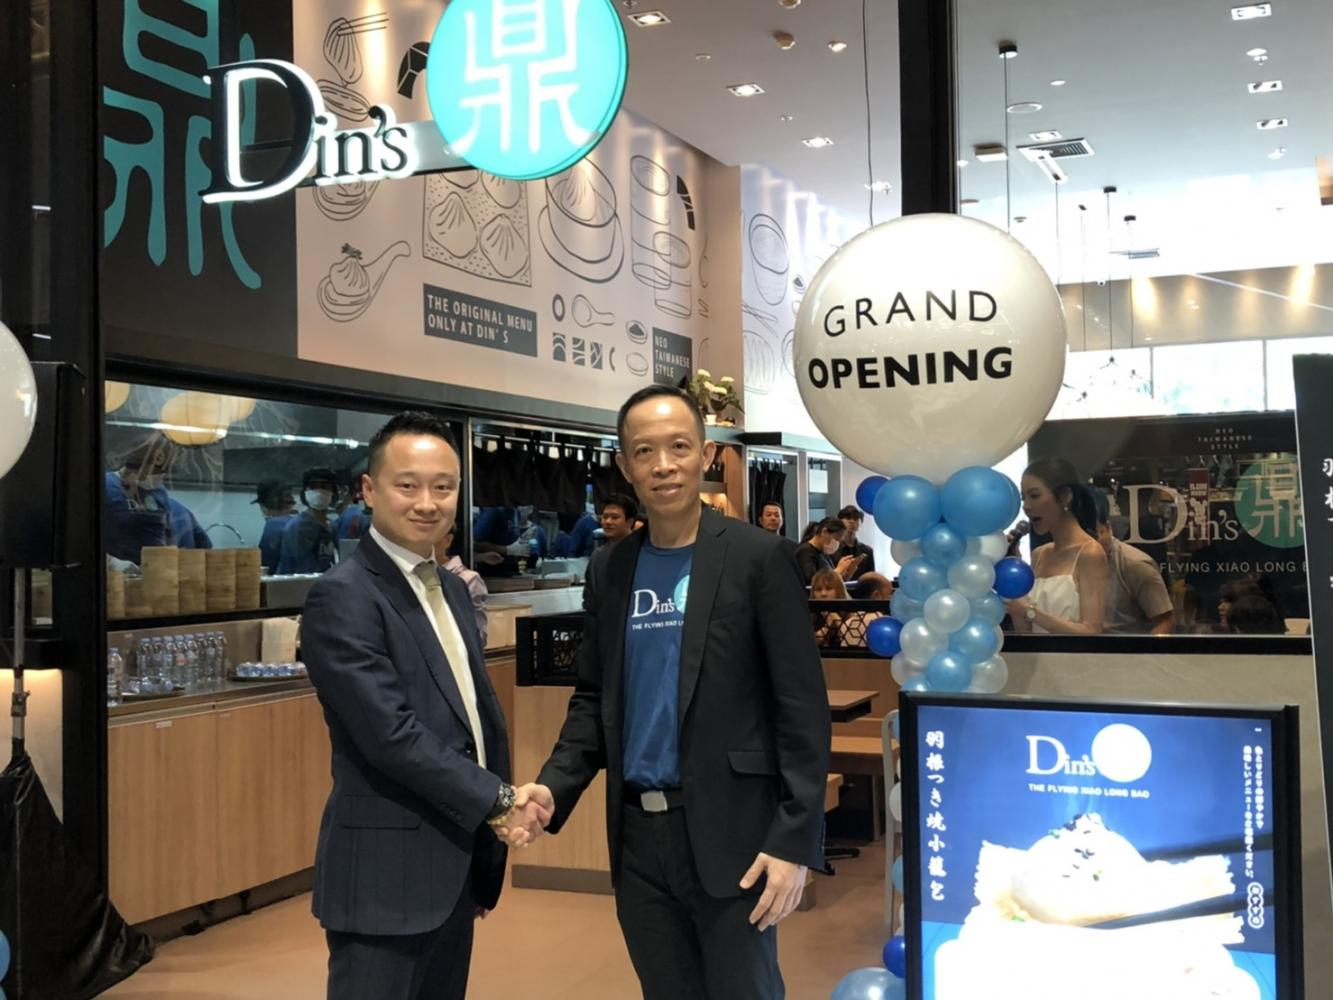 Mr Boonyong, right, shakes hands with Yuta Ogisu, chief executive of Food Buddies Co, at the grand opening of Din's, the 16th restaurant brand under Zen Corporation.